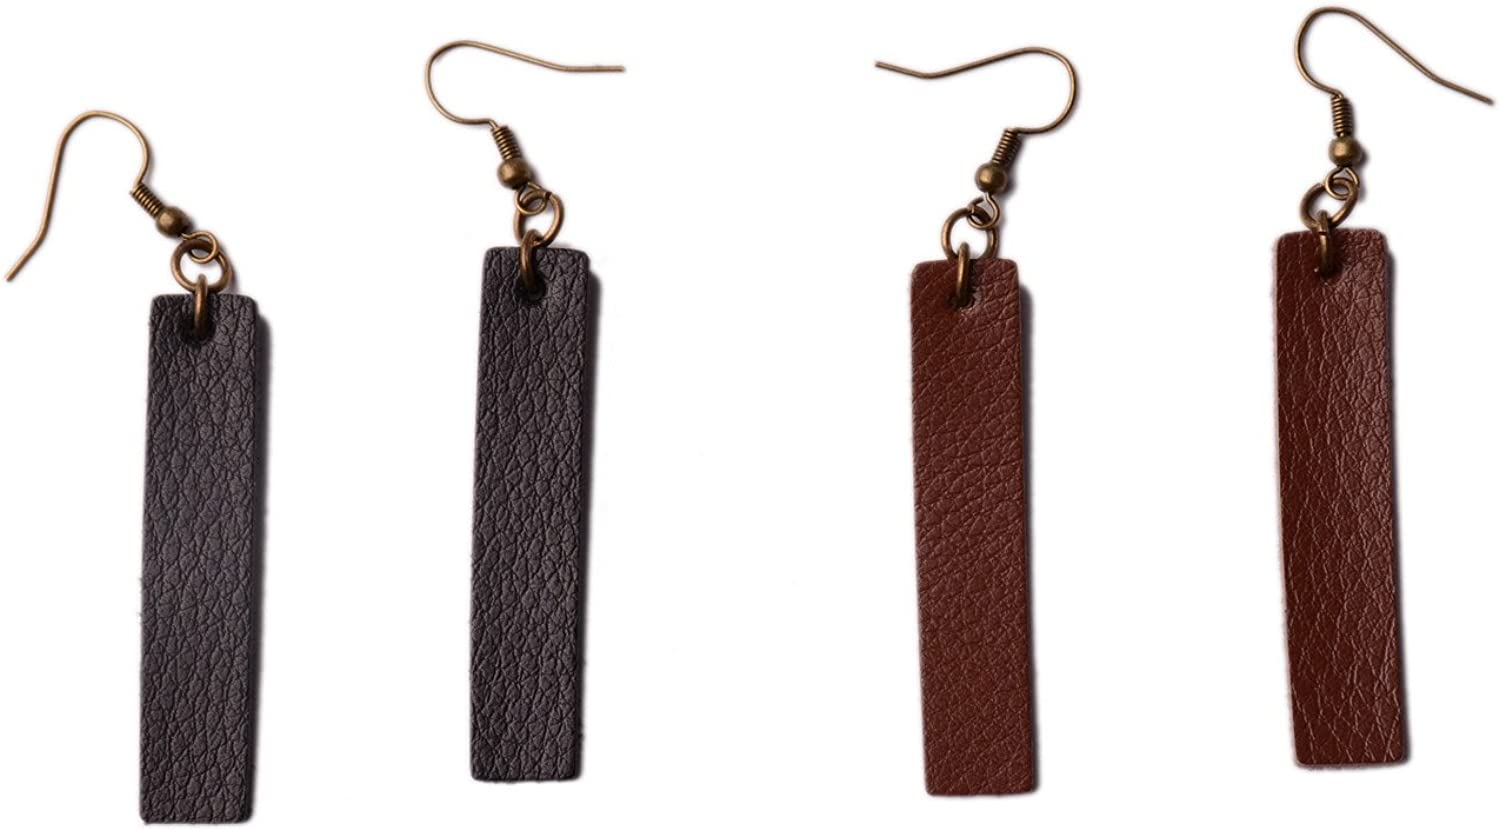 Ranking TOP16 LN Rainbery 2 Pairs Bar Antique Looking Earrings Be super welcome Rectan Leather